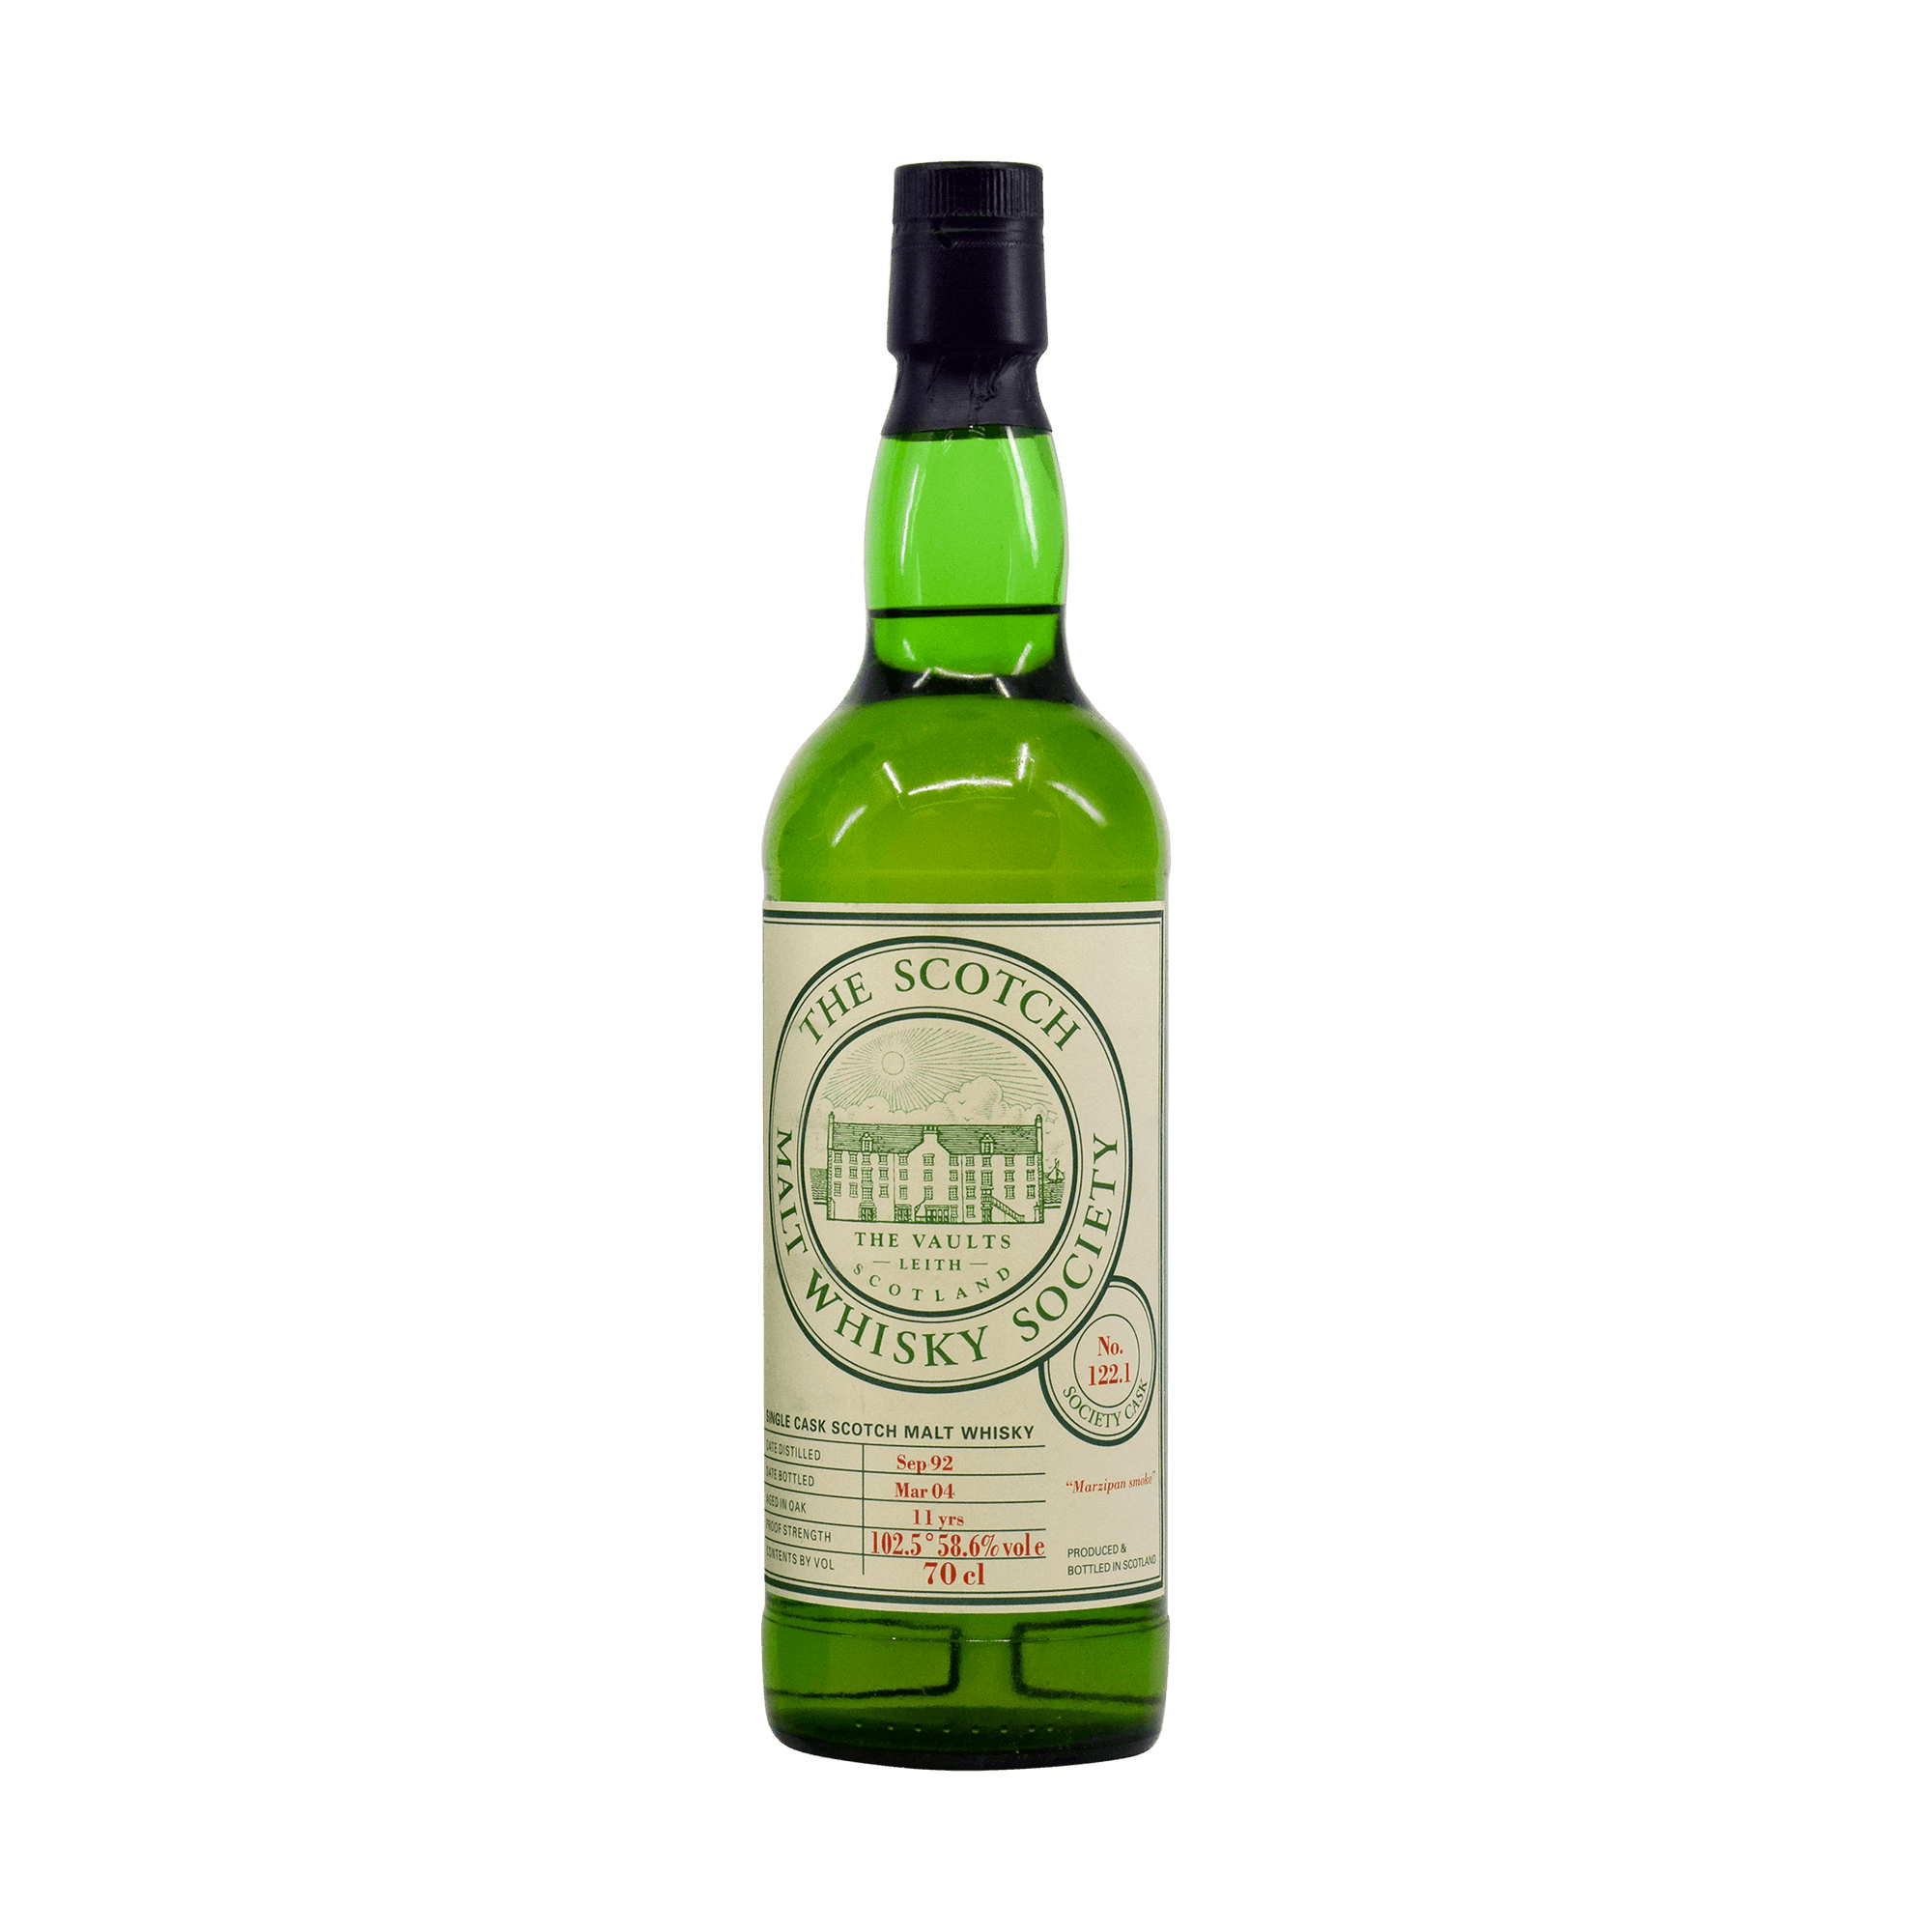 Croftengea 1992 11 Year Old 'Marzipan Smoke' SMWS 58.60% 70cl